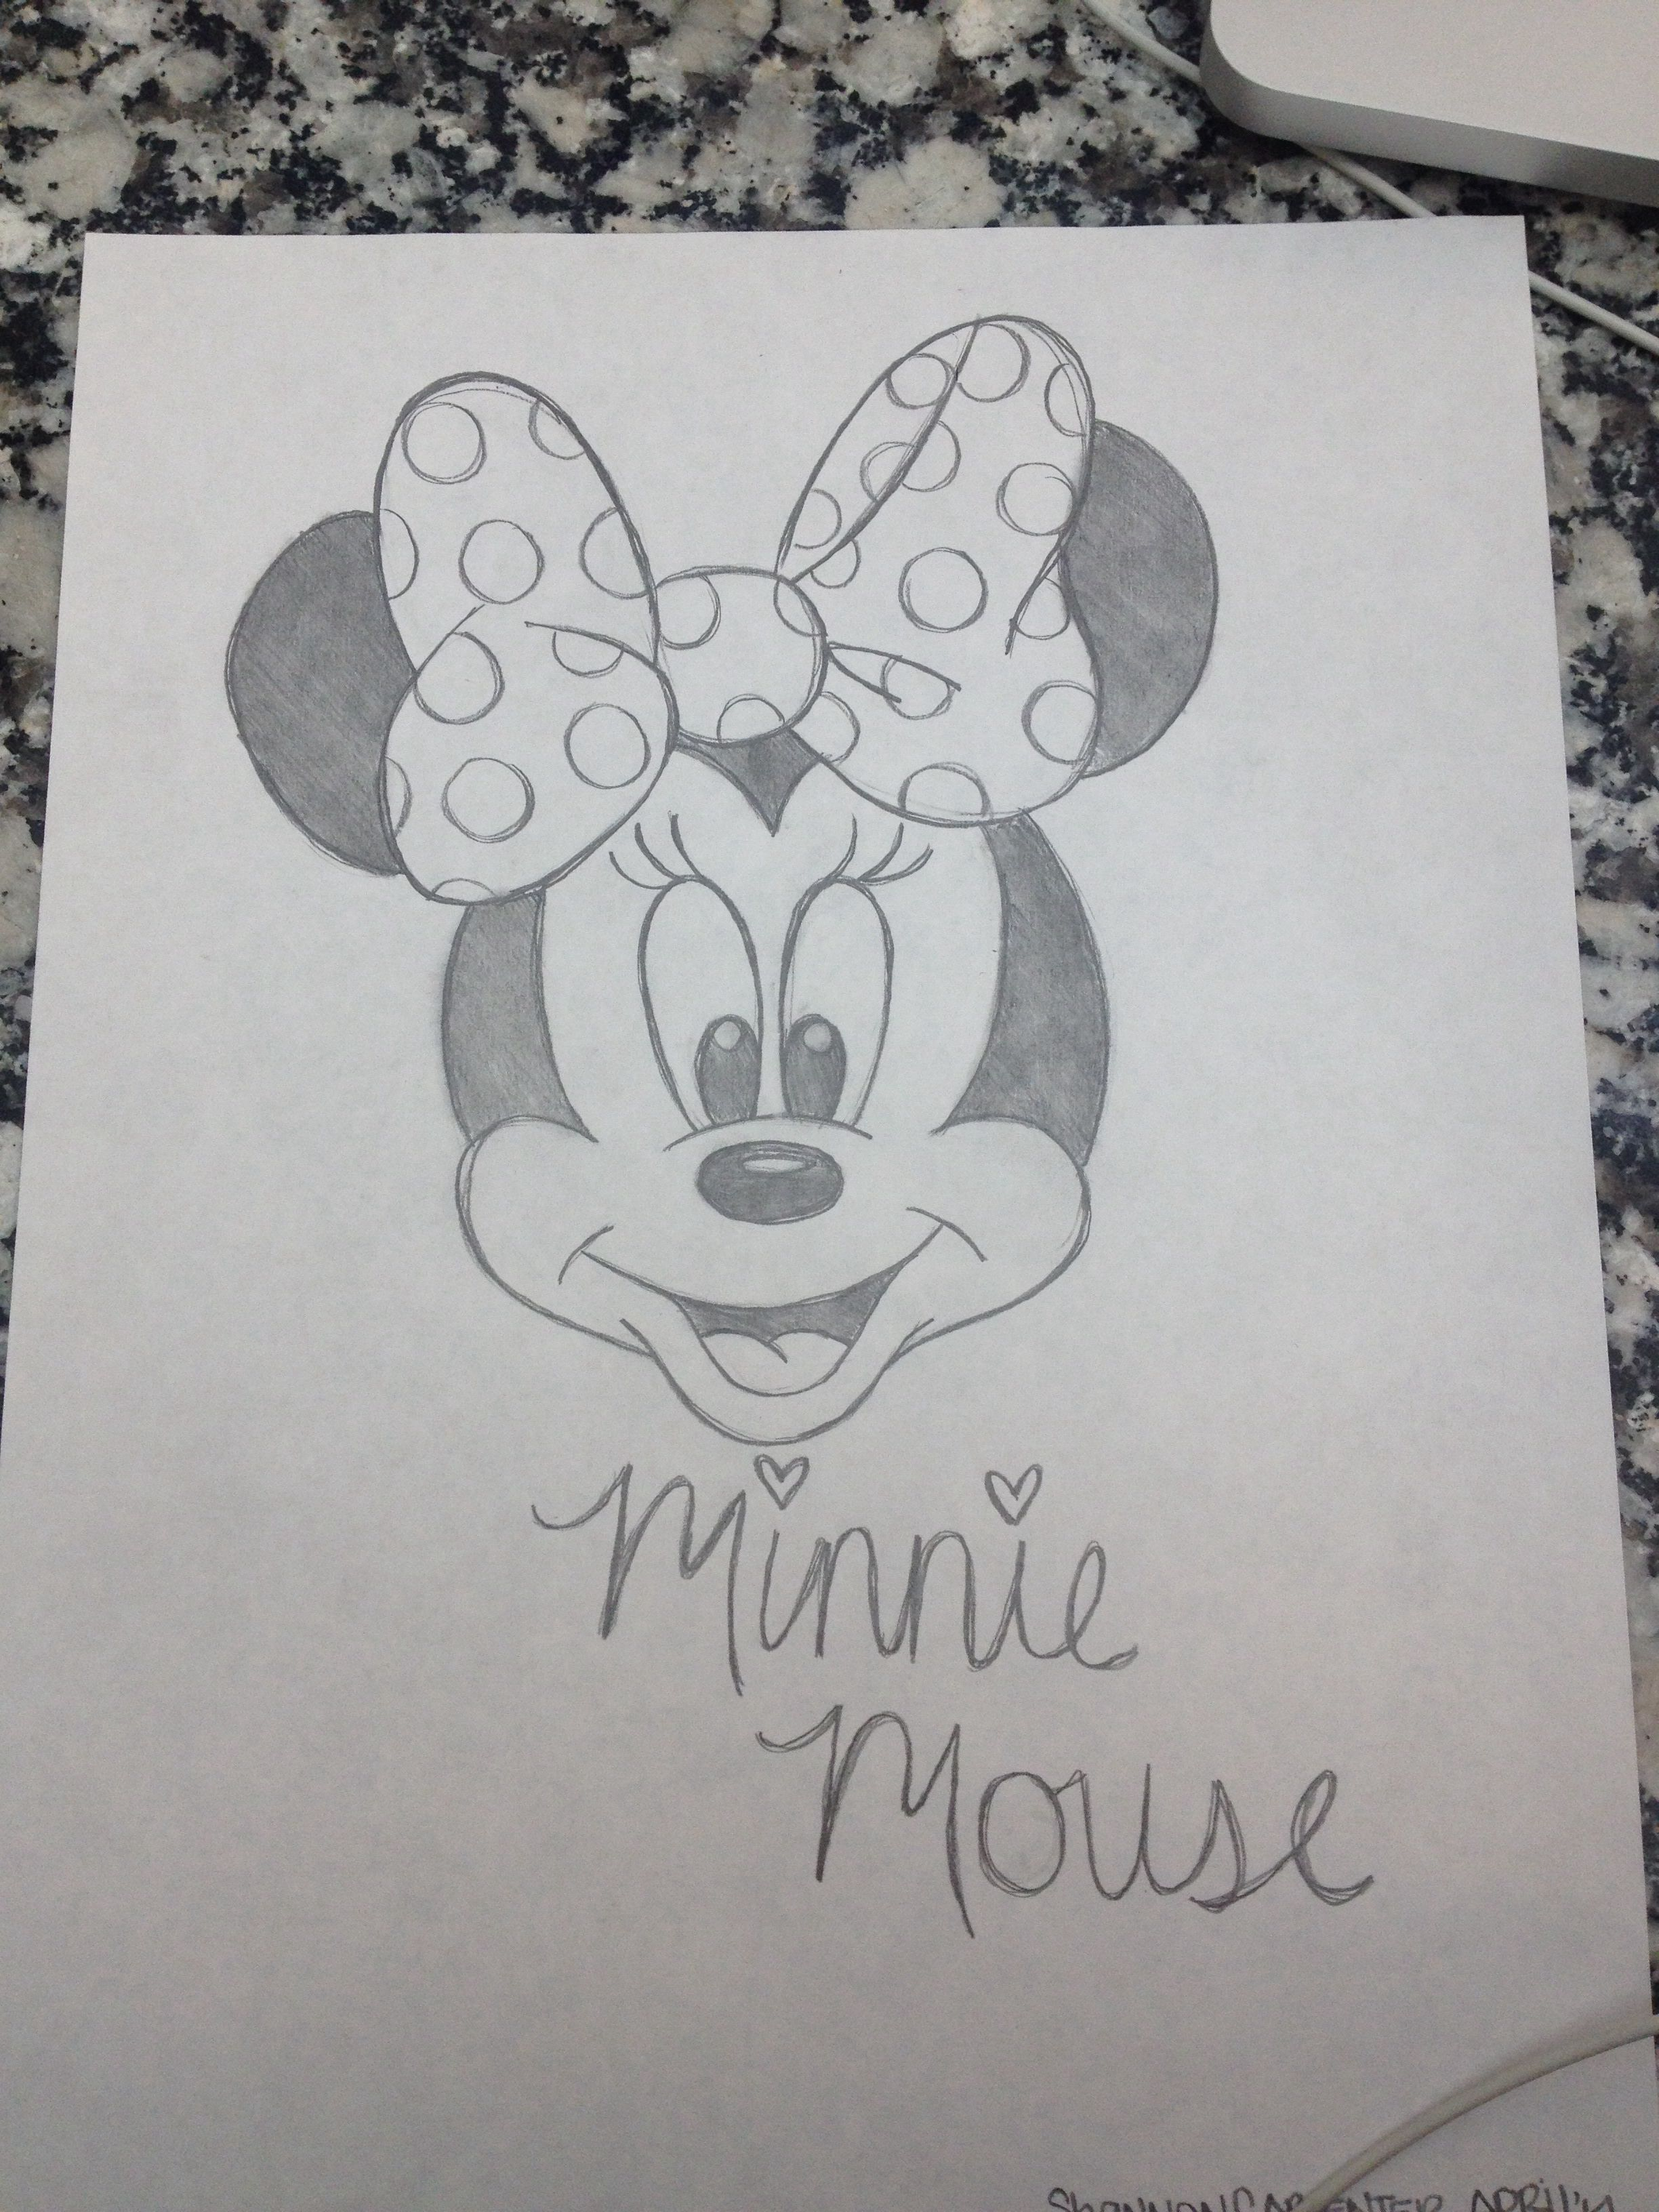 Minnie Mouse Sketch Draw In 2019 Drawings Art Drawings Cartoon